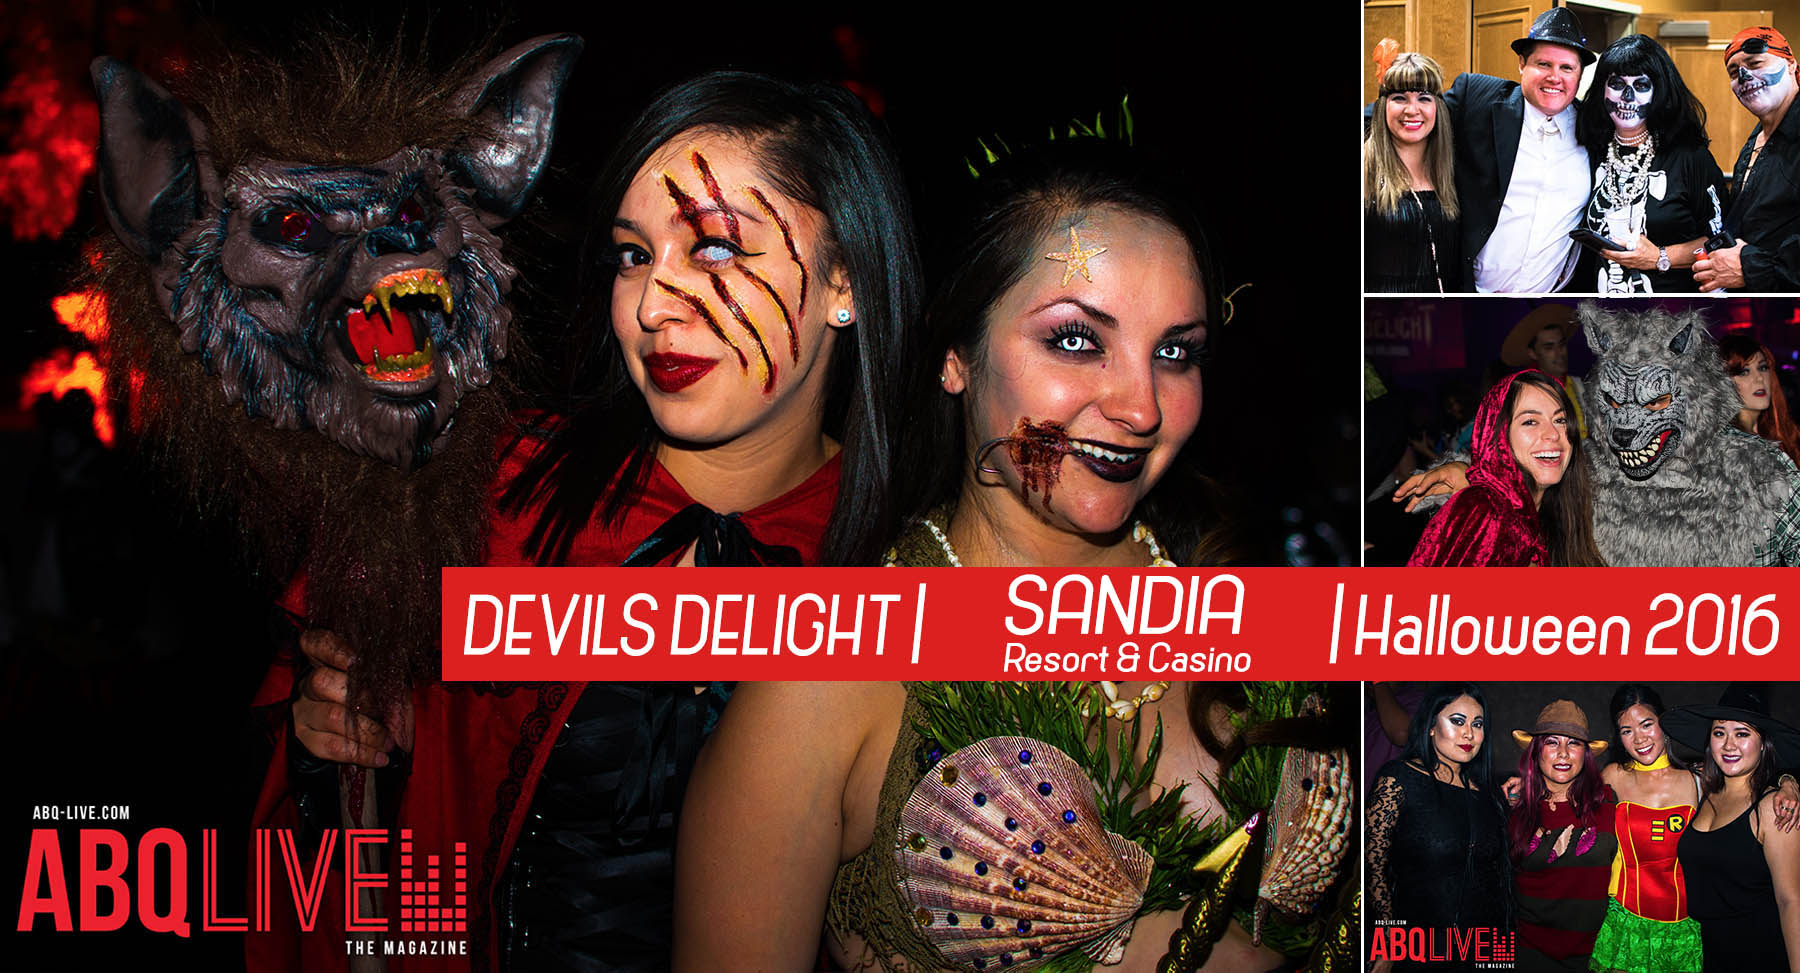 devils delight costume party sandia casino